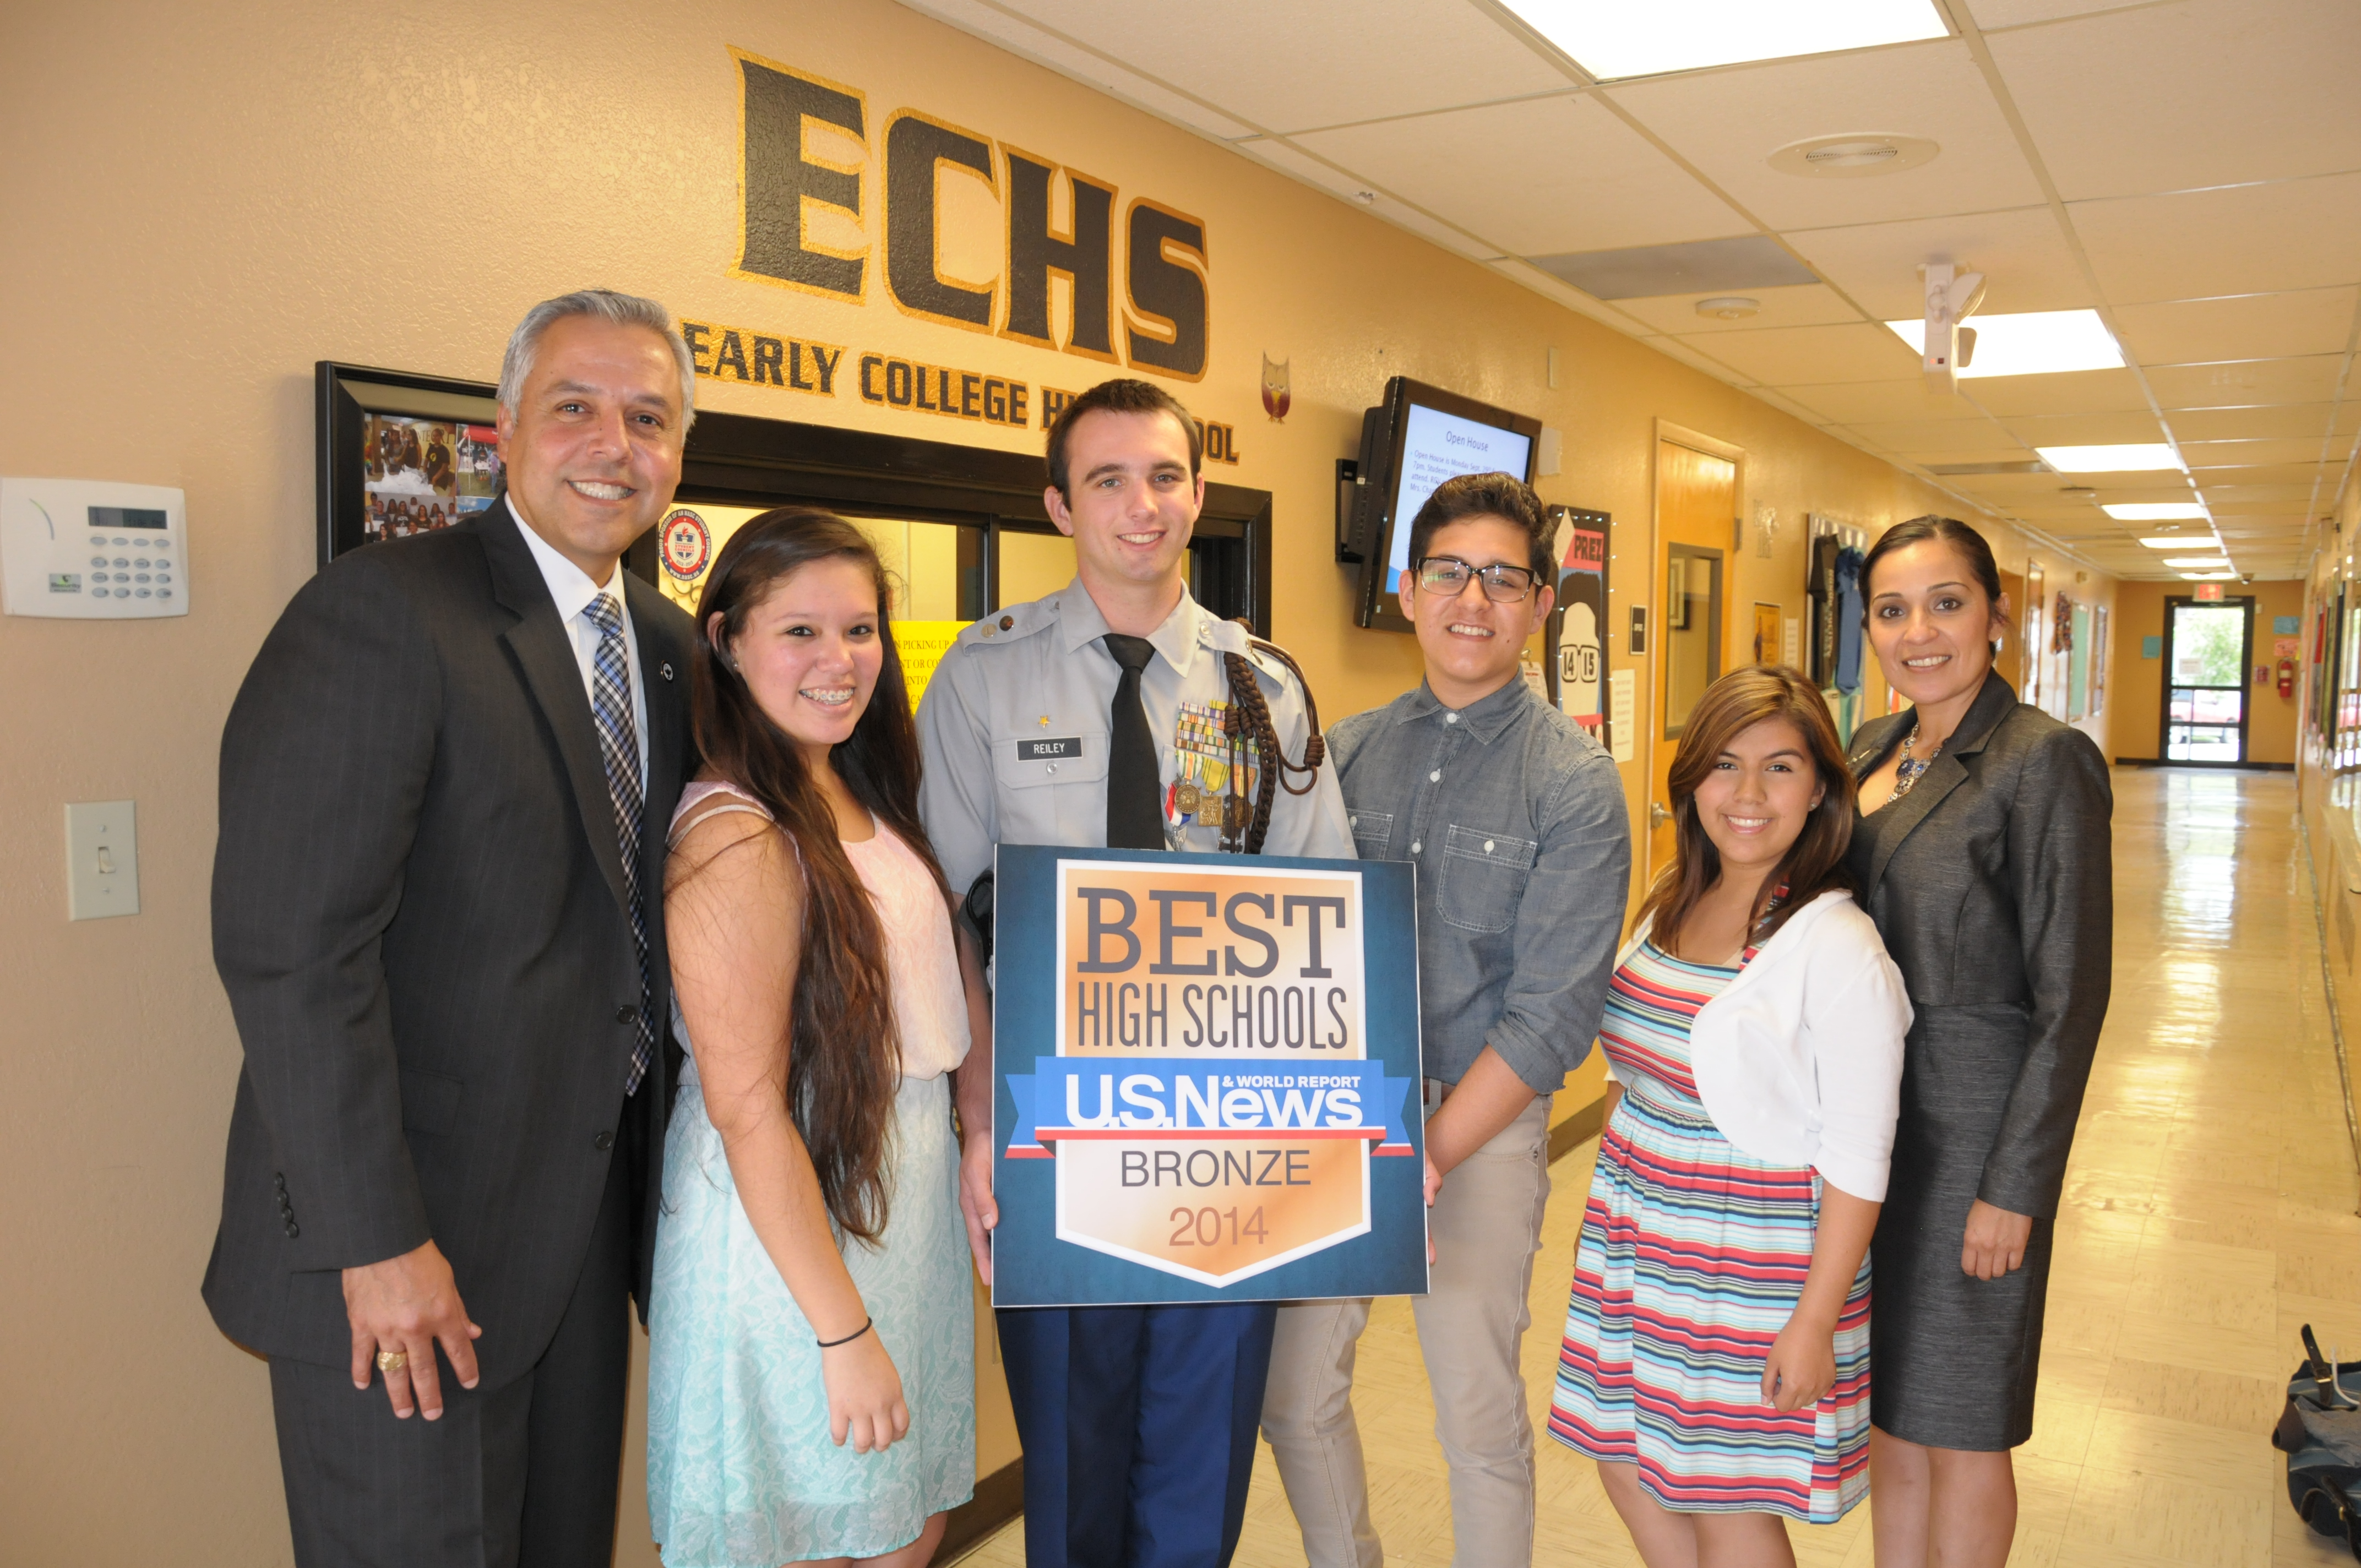 U.S. News names ECHS as one of America's Top High Schools for 2014